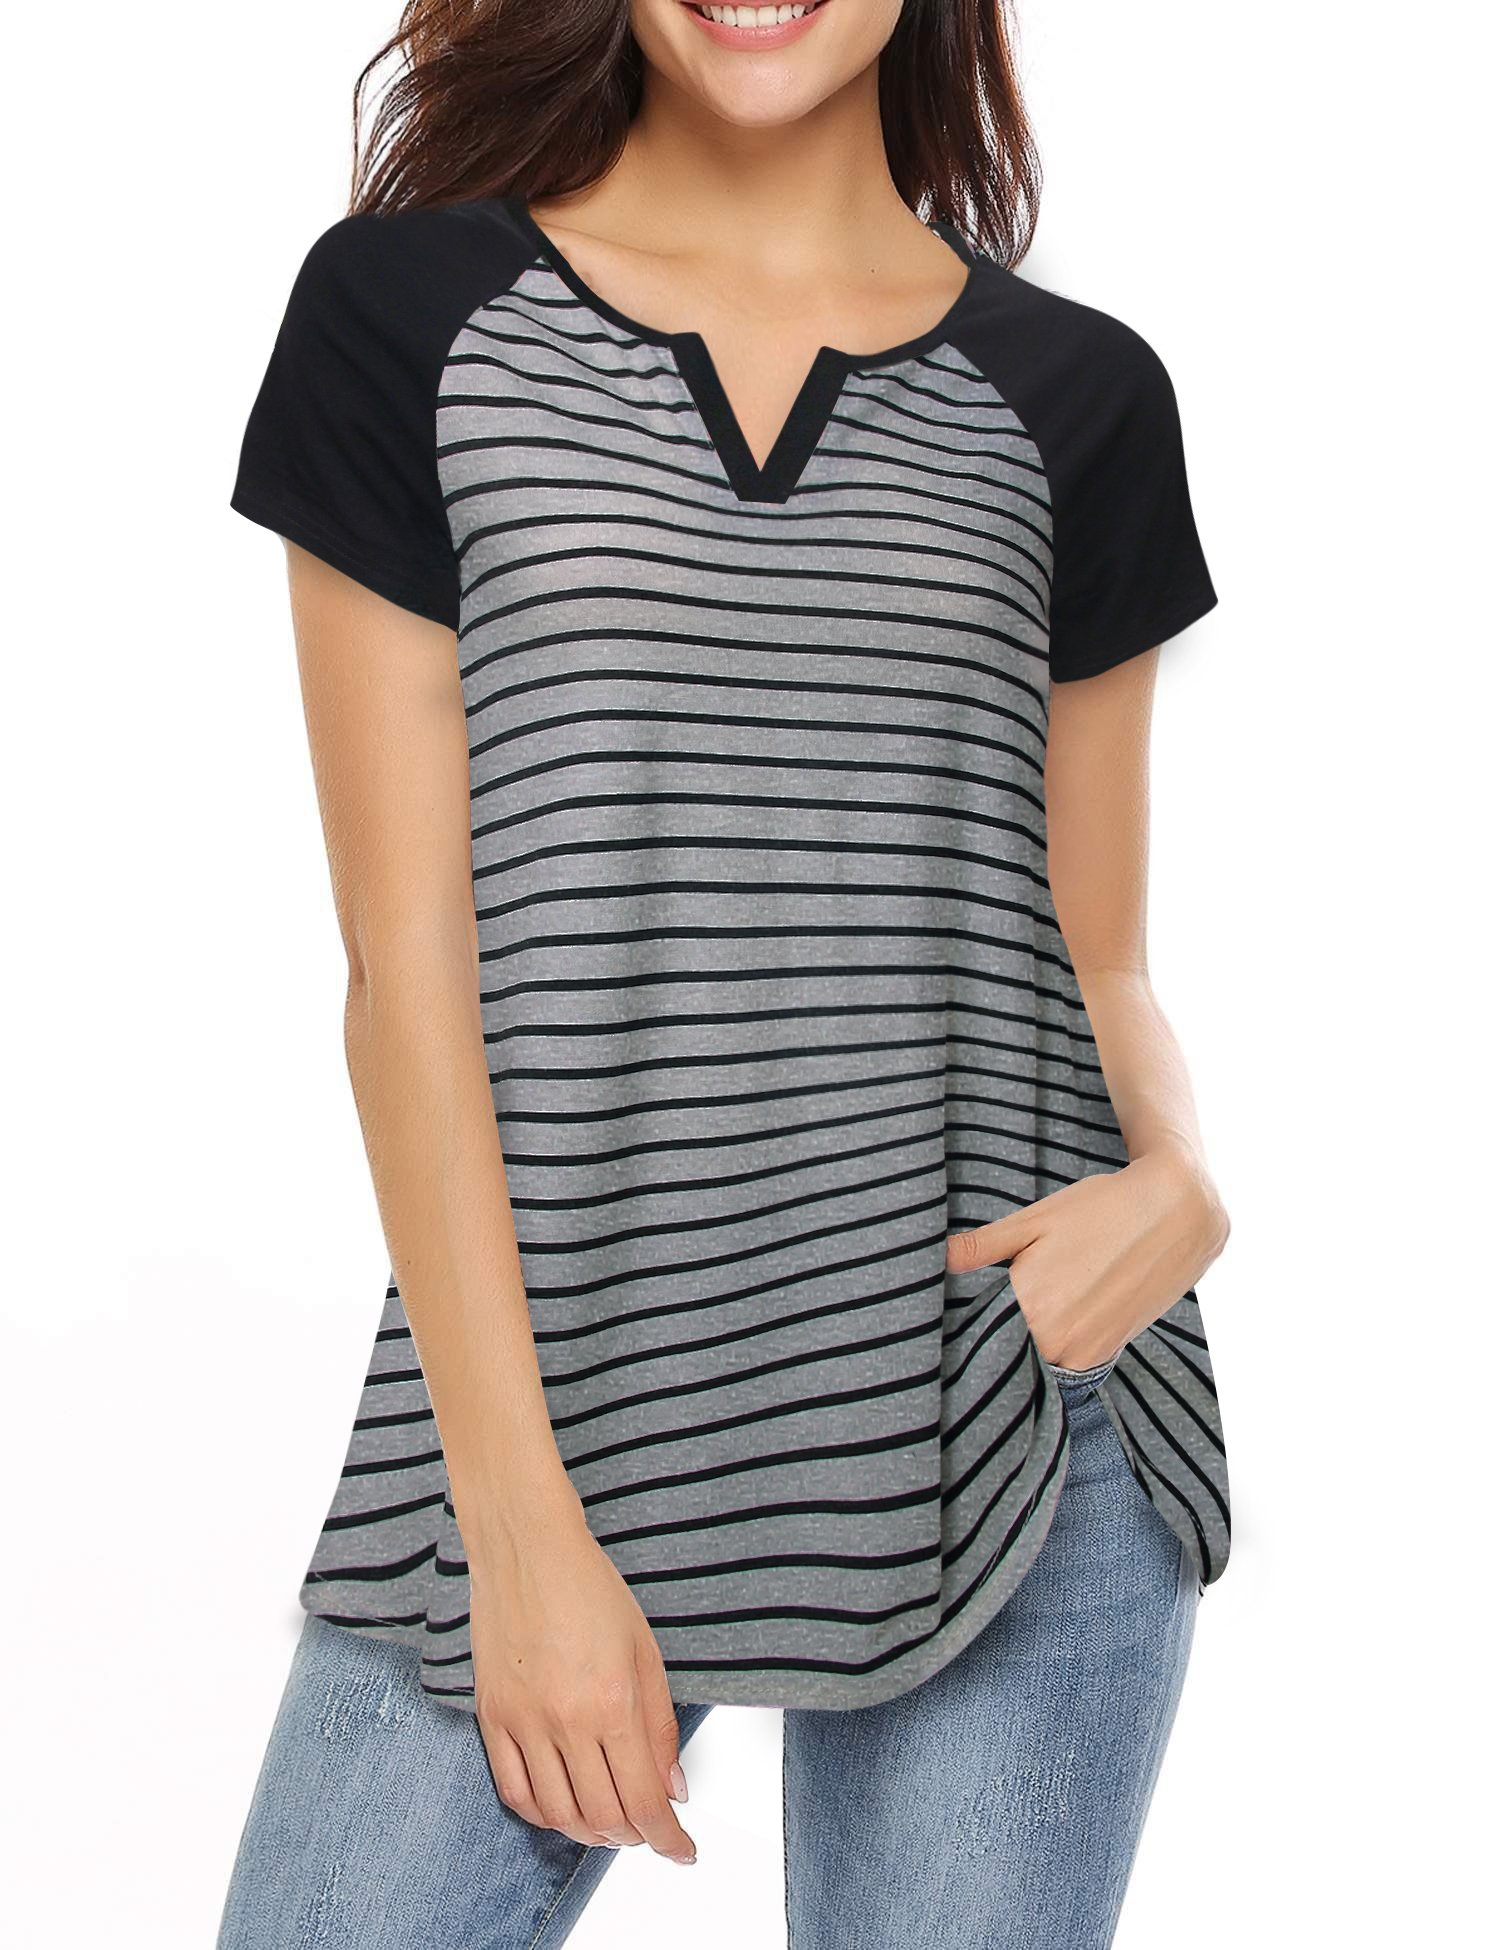 Vafoly Summer Shirts for Women, Juniors Raglan Shirt Fashion Plus Size Notch V Neck Short Sleeve Striped Relaxed Fit Tunic for Leggings Black and Grey,M